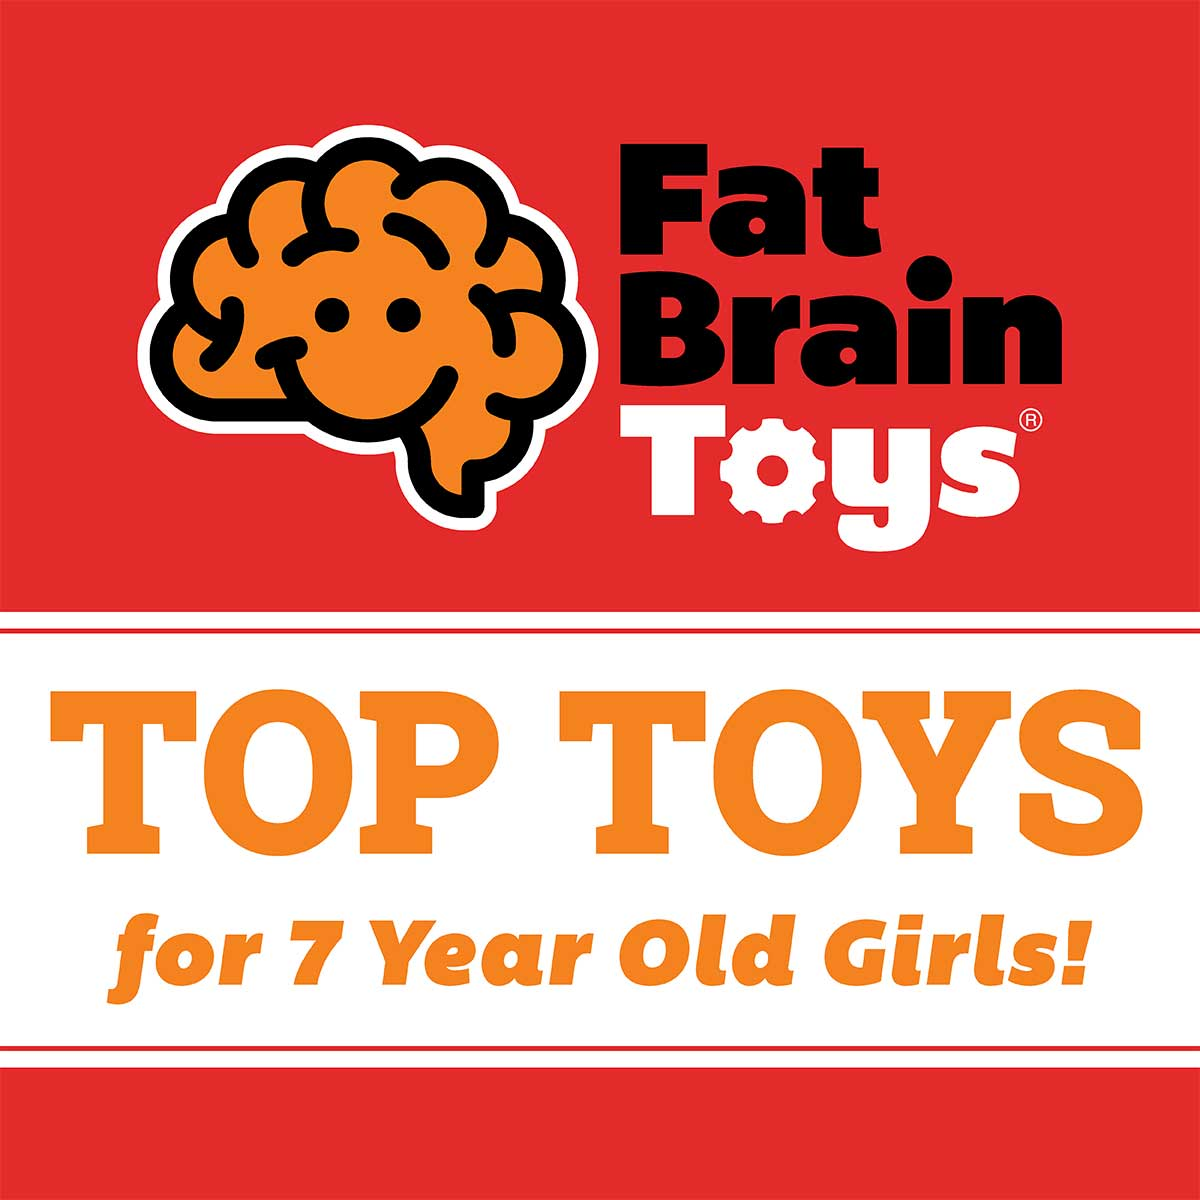 Best Toys For 7 Year Old Girls Gifts For 7 Year Old Girls Fat Brain Toys